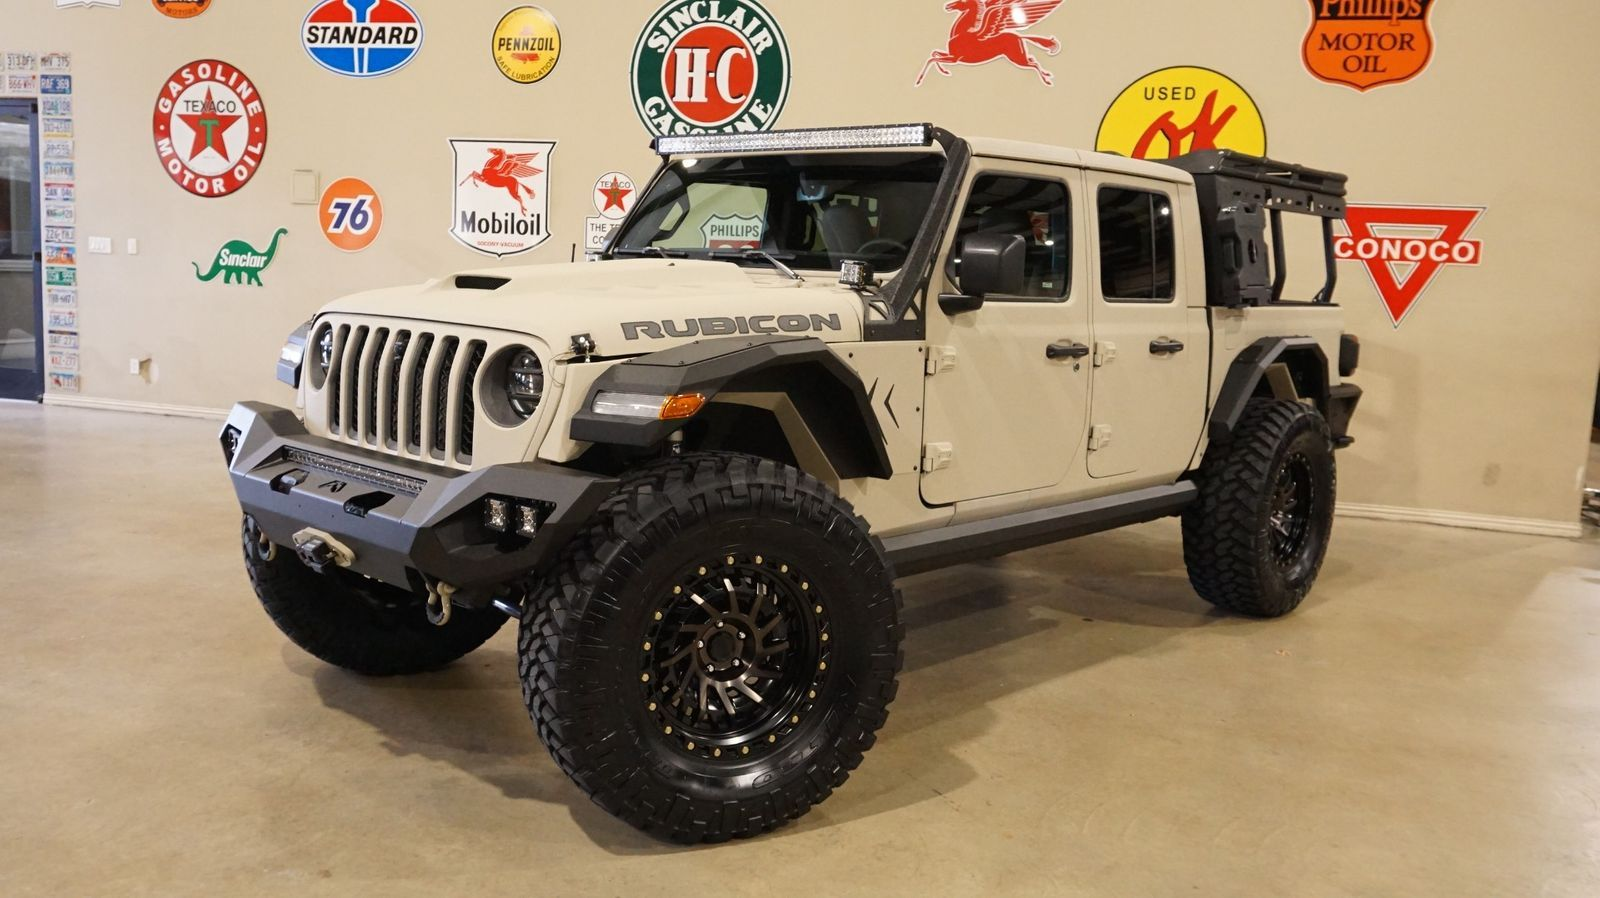 Ad Ebay Link 2020 Jeep Gladiator Rubicon 4x4 Supercharged Fab Fours Dupont Kevlar 2020 Tan Rubicon 4x4 Superchar In 2020 Jeep Gladiator Jeep Wrangler Lifted Jeep Jl